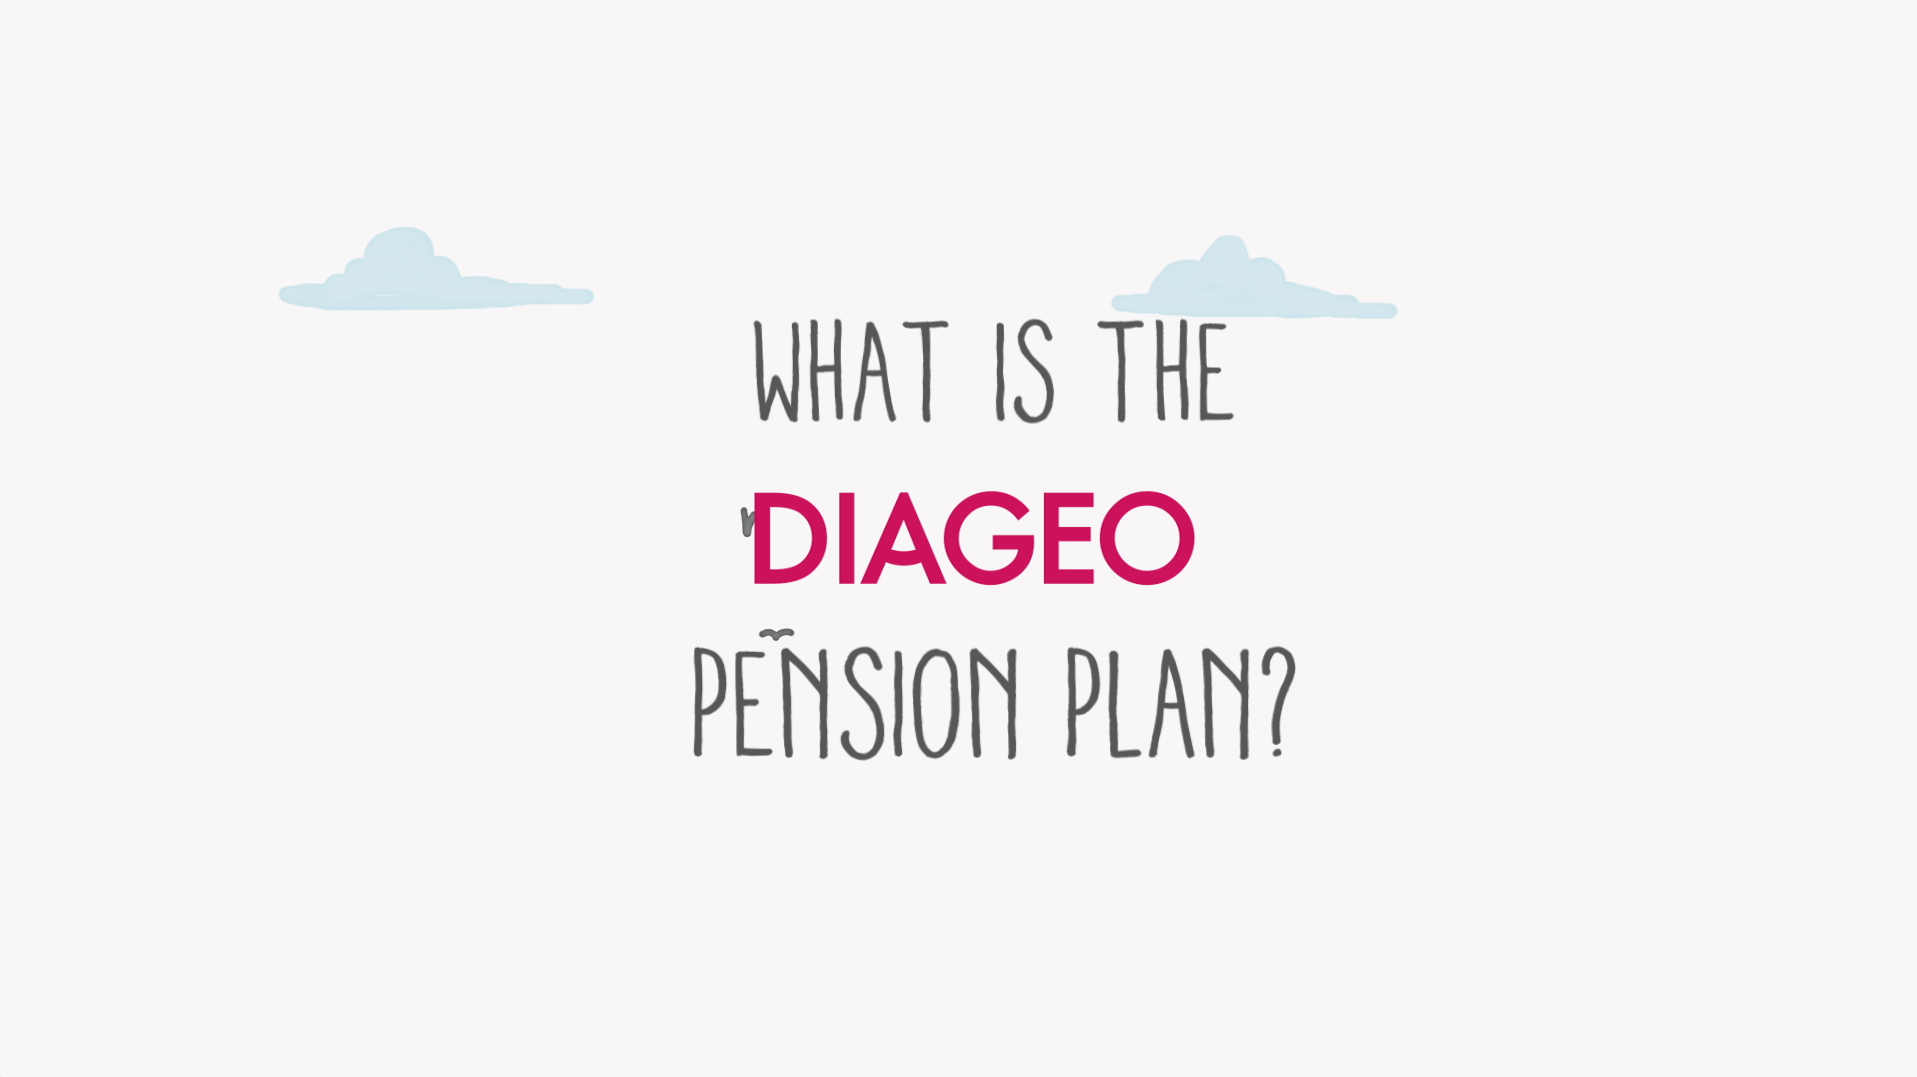 What is the DIAGEO Pension Plan?